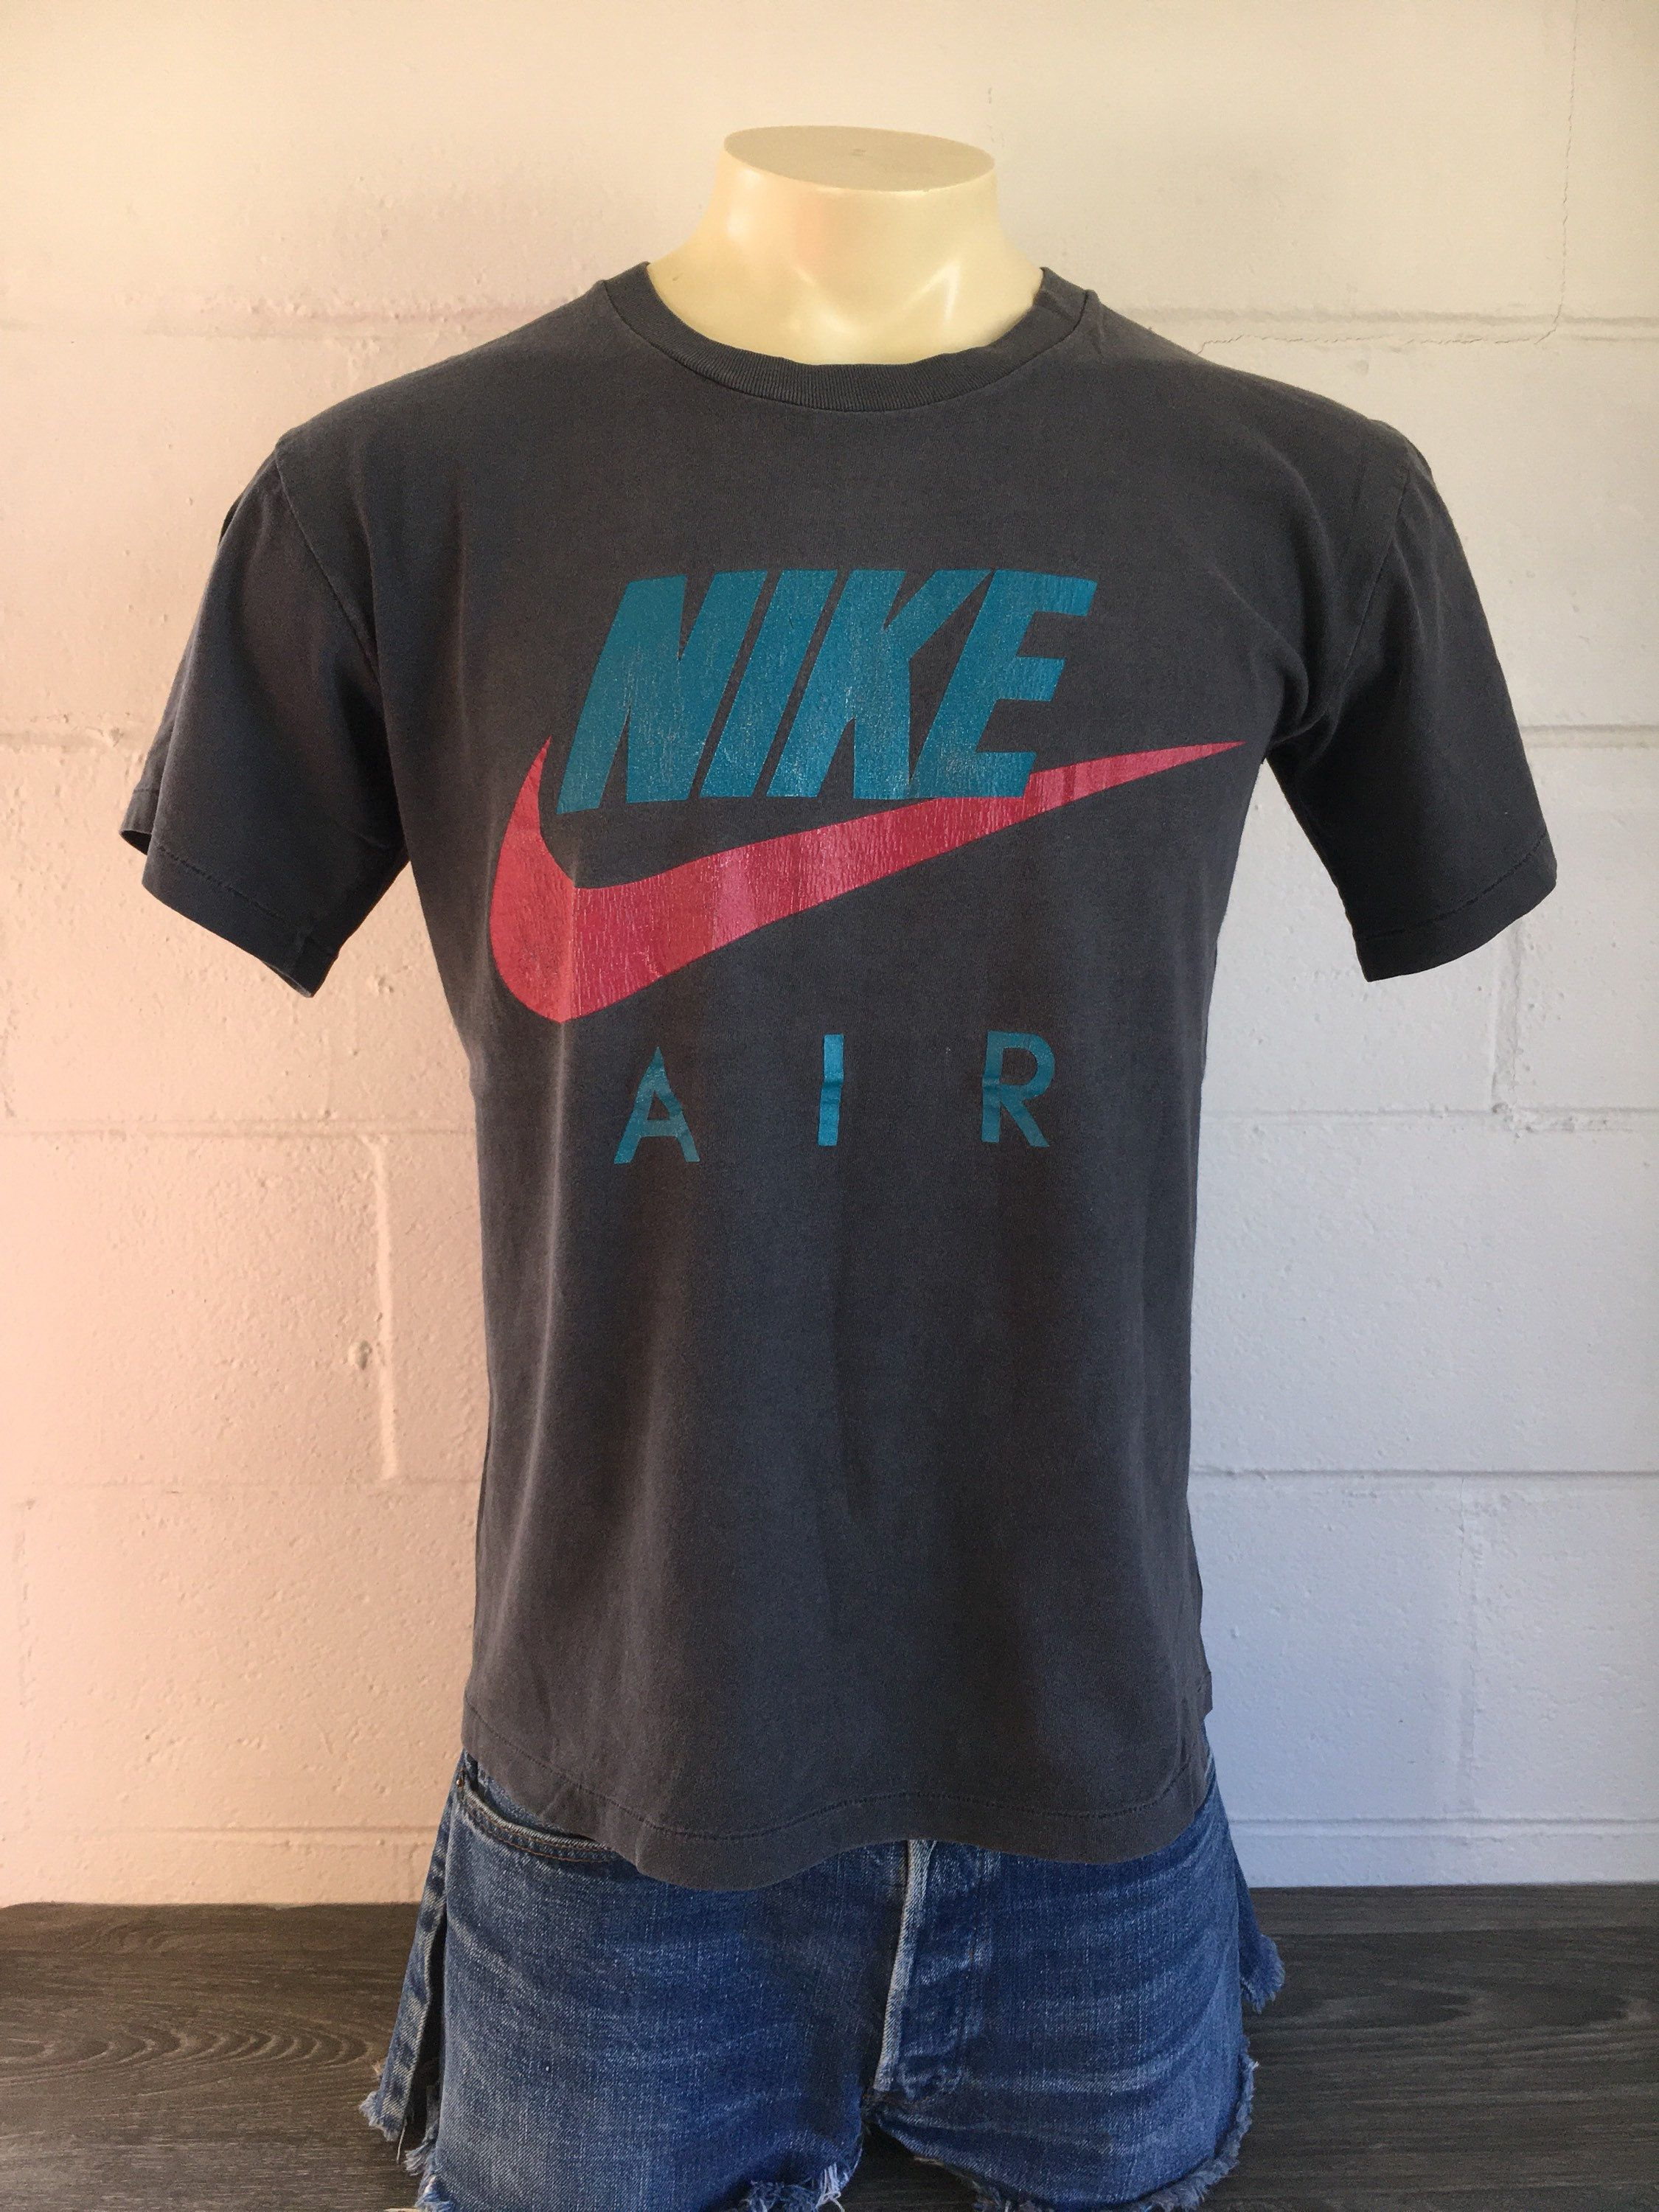 2d2f058fa4b5 Nike Air Tshirt Vintage 90s Big Swoosh Logo Shirt Single Stitch Jordan Tee  Burnout Black Medium